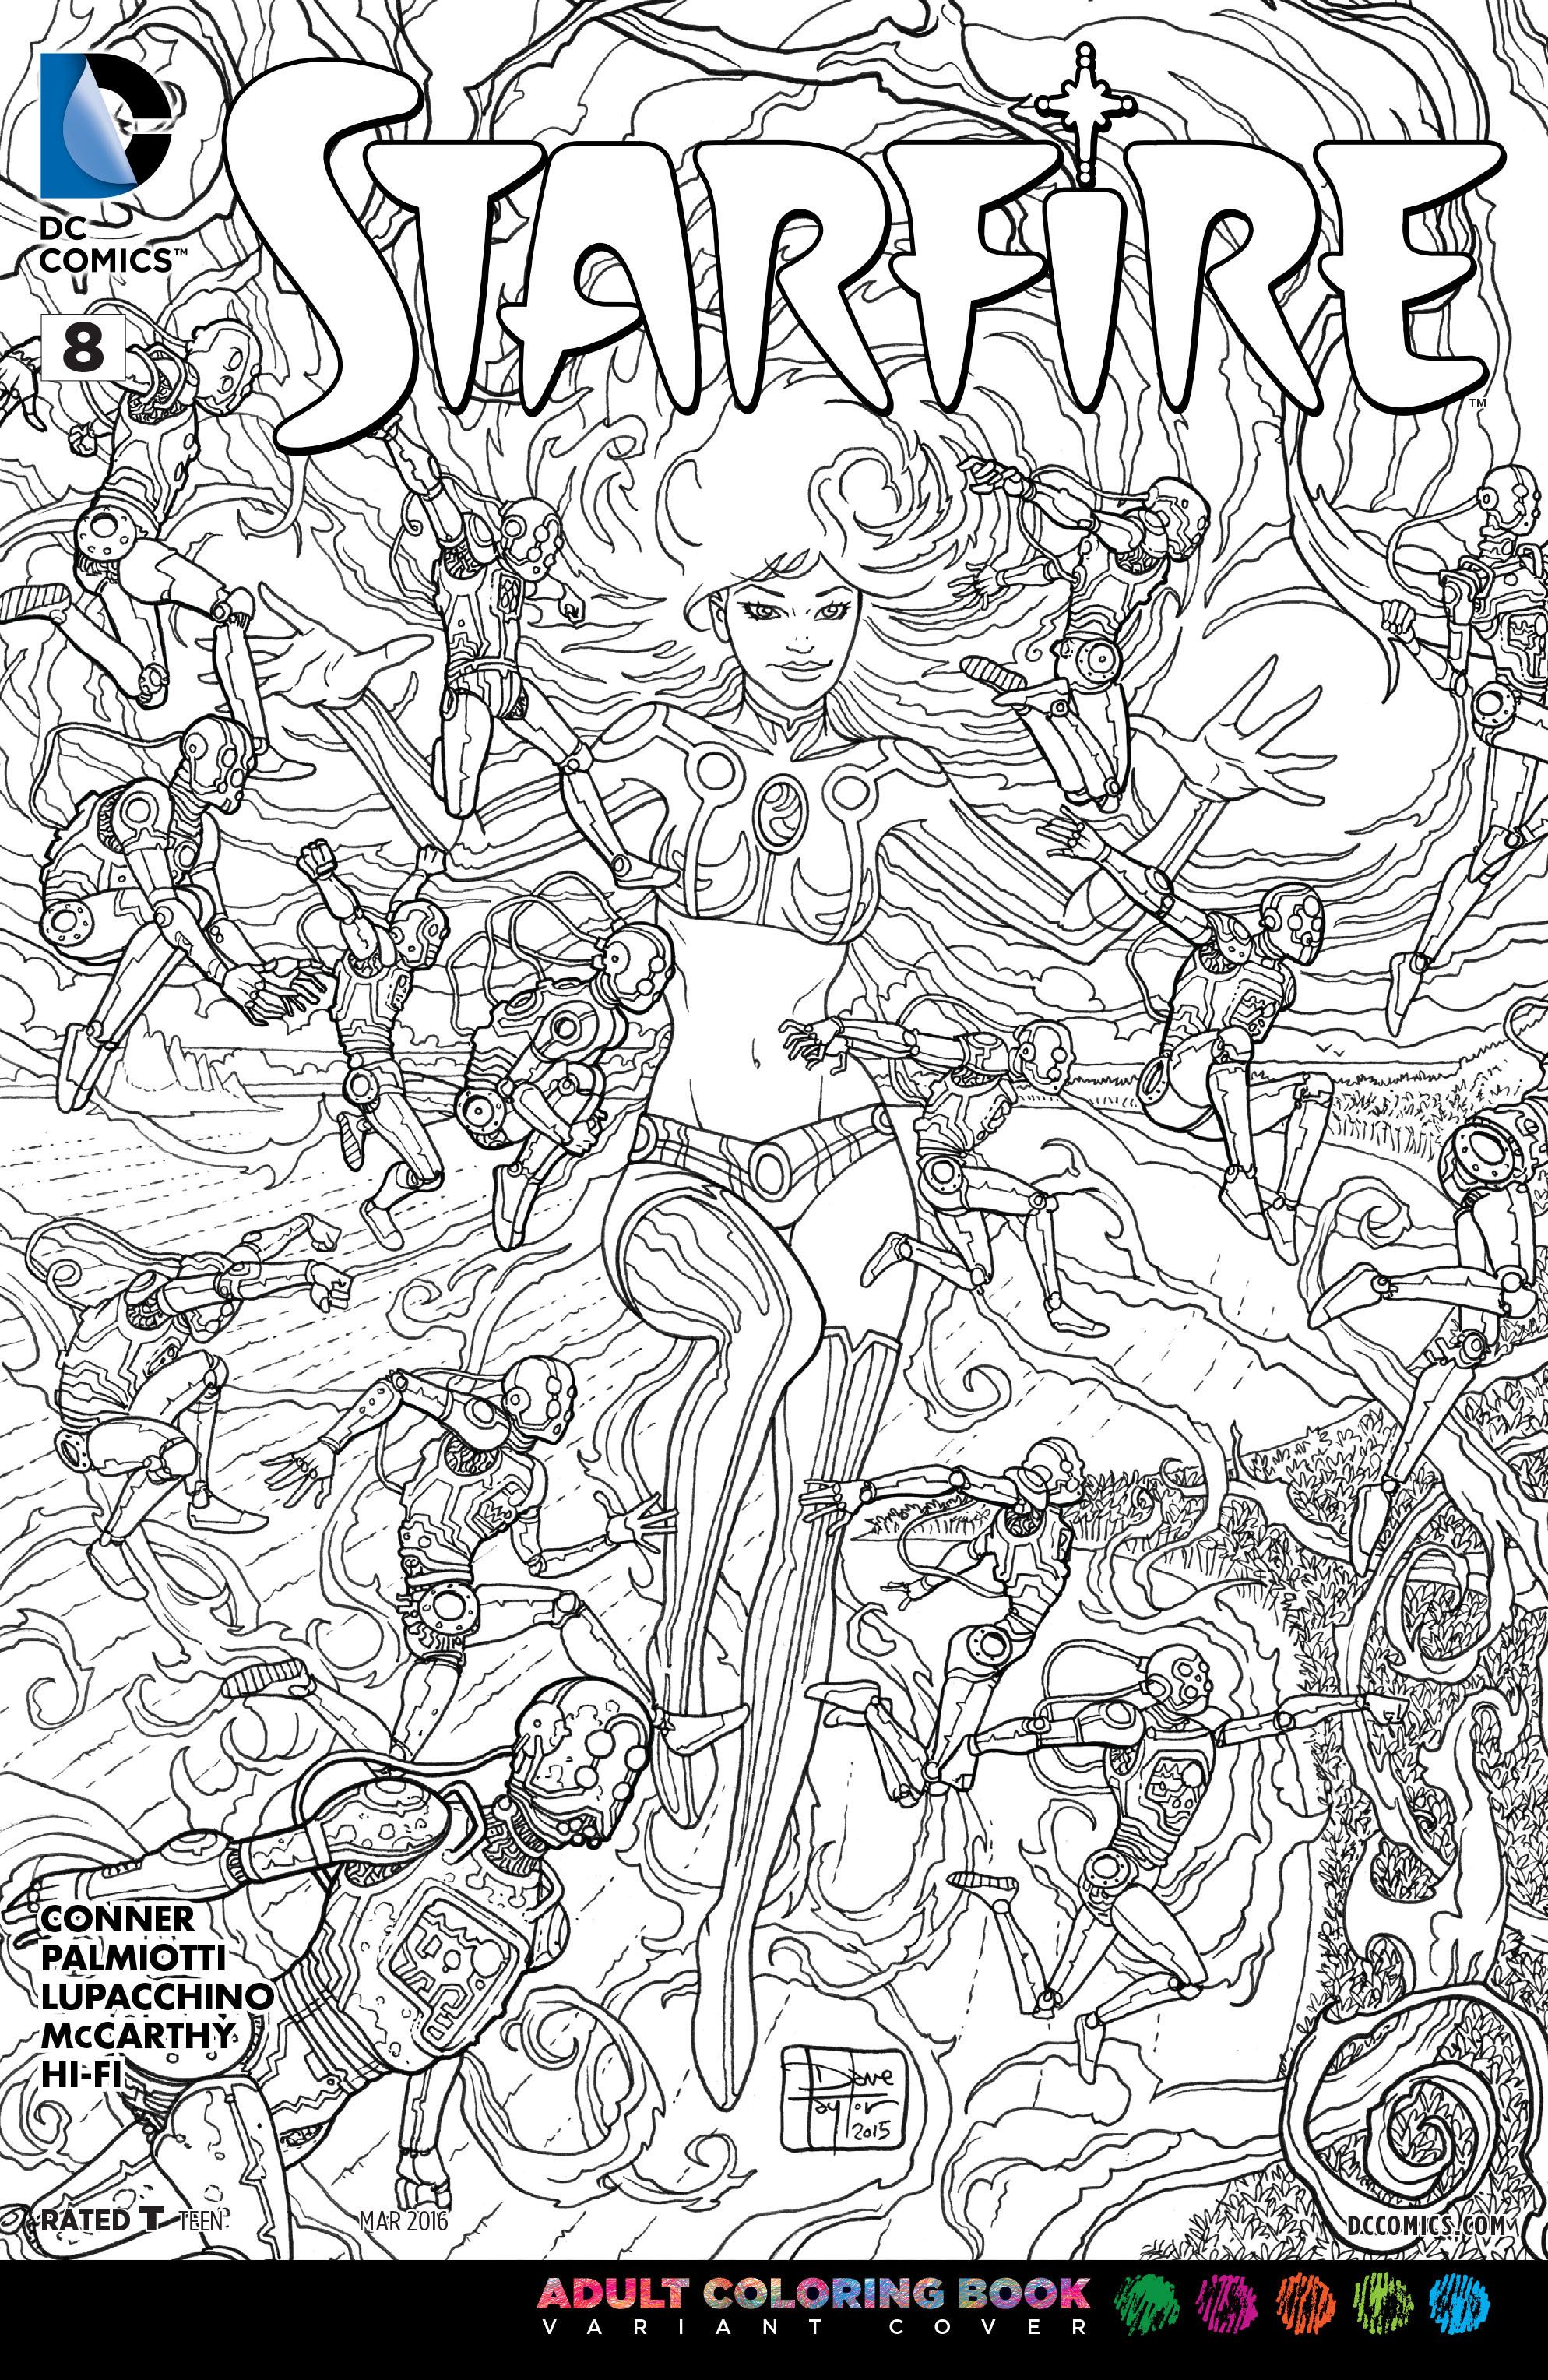 75 Elegant Stock Of Dc Comics Coloring Book Check More At Https Www Mercerepc Com Dc Comics Coloring Book Dc Comic